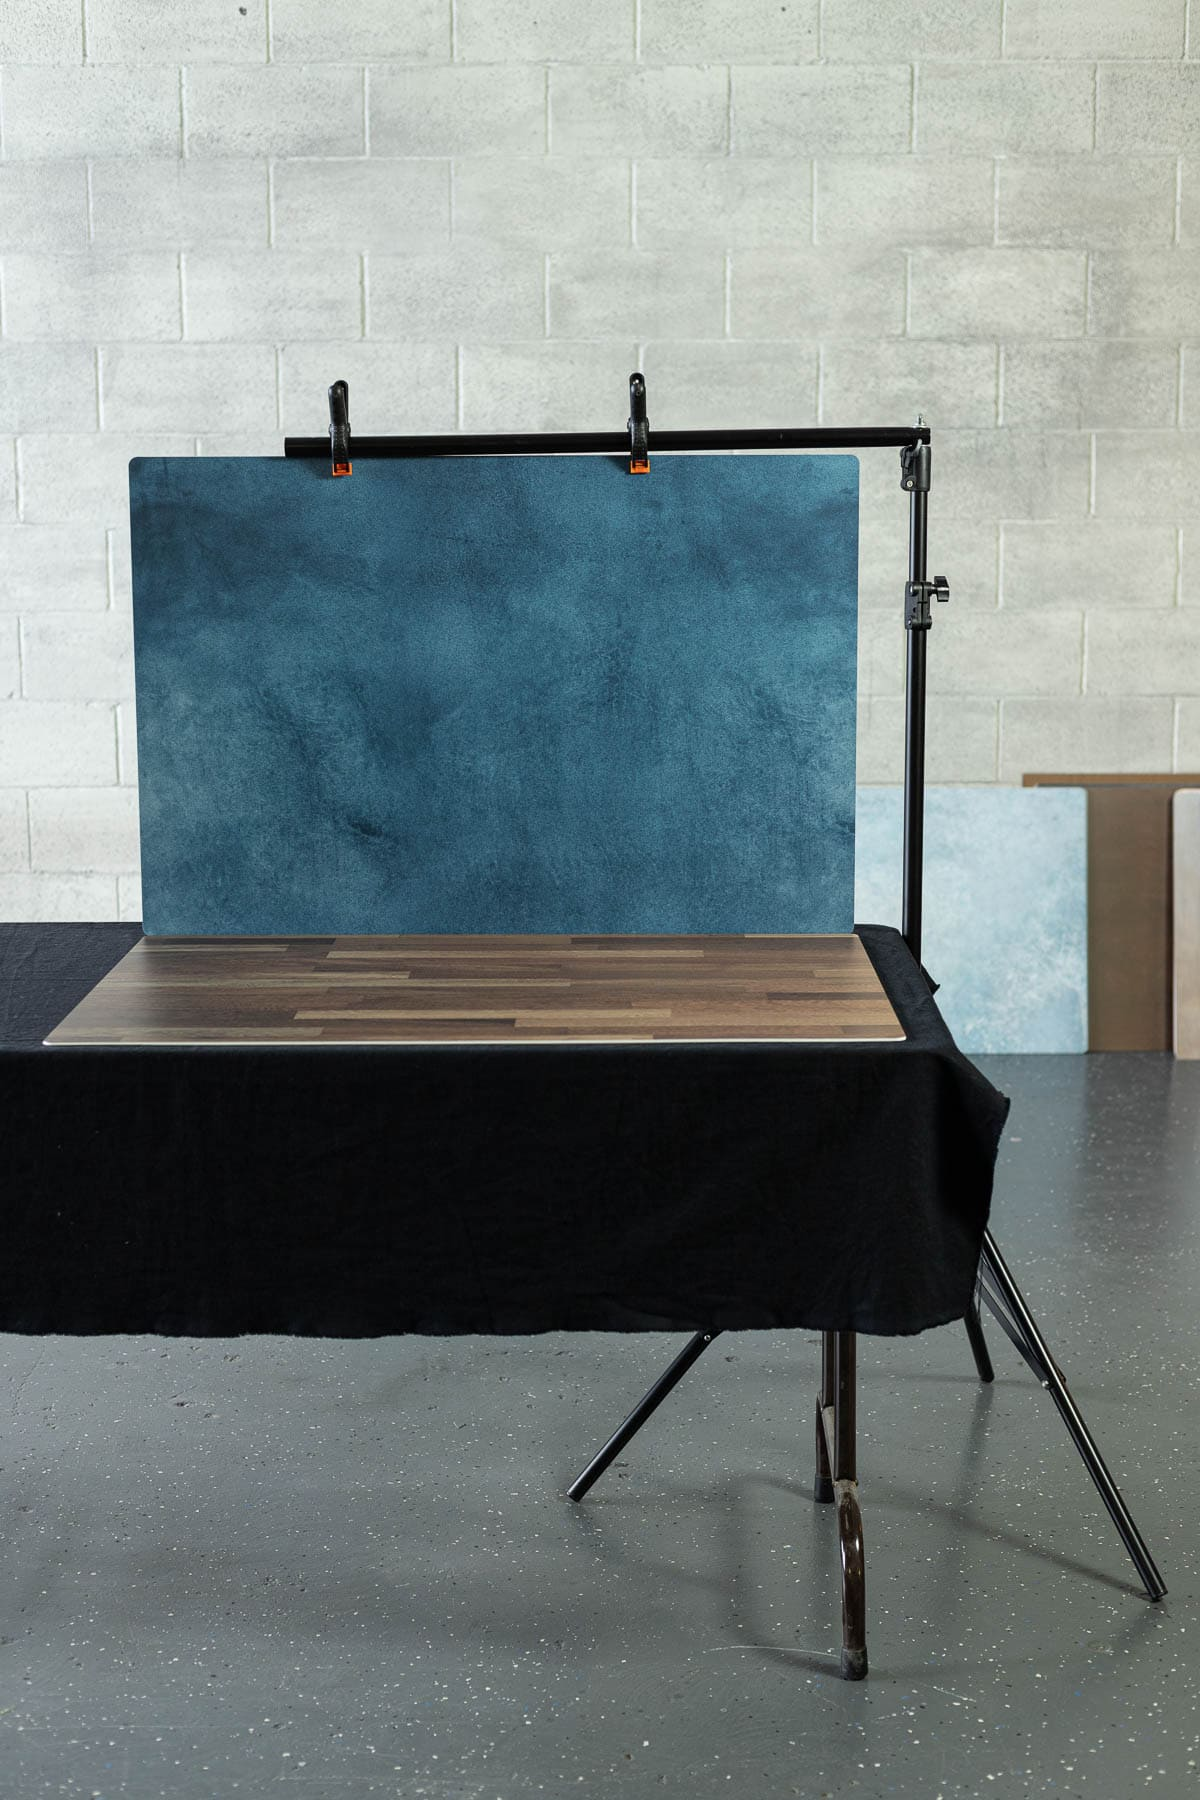 A photography stand hanging up a backdrop